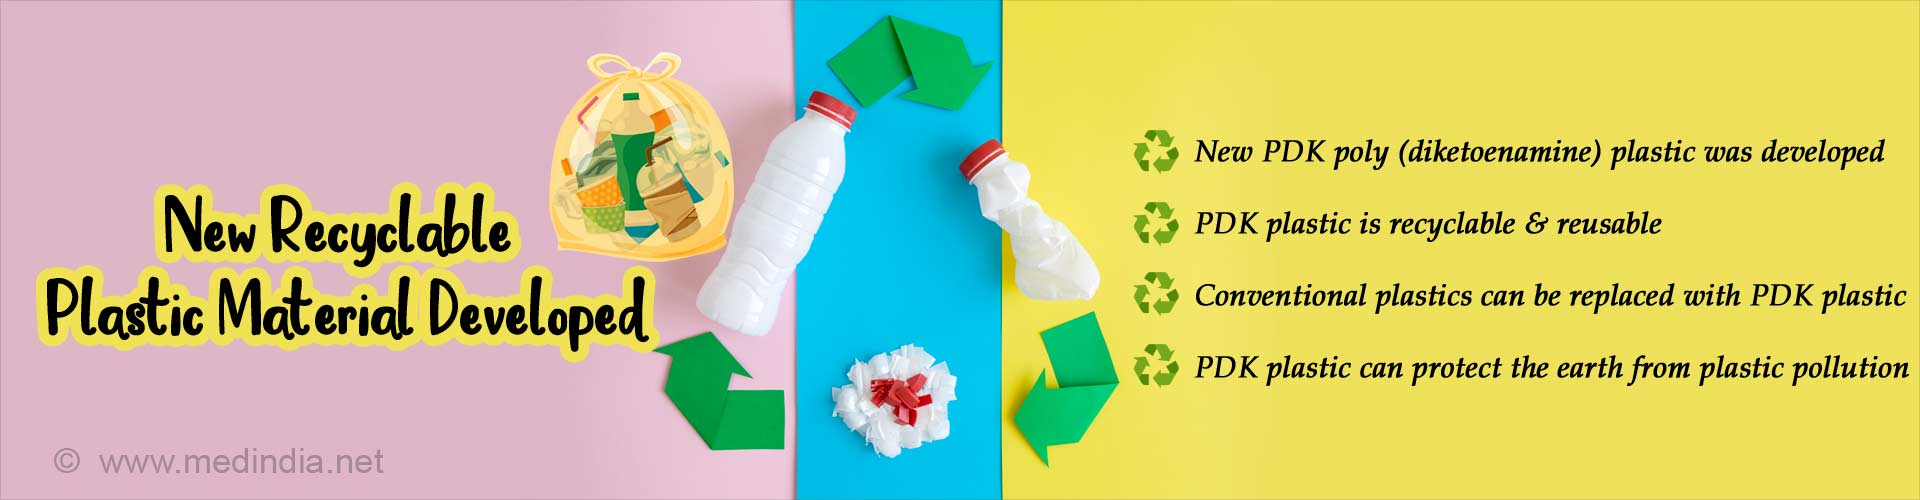 New recyclable plastic material developed. New PDK poly (diketoenamine) plastic was developed. PDK plastic is recyclable and reusable. Conventional plastics can be replaced with PDK plastic. PDK plastic can protect the earth from plastic pollution.